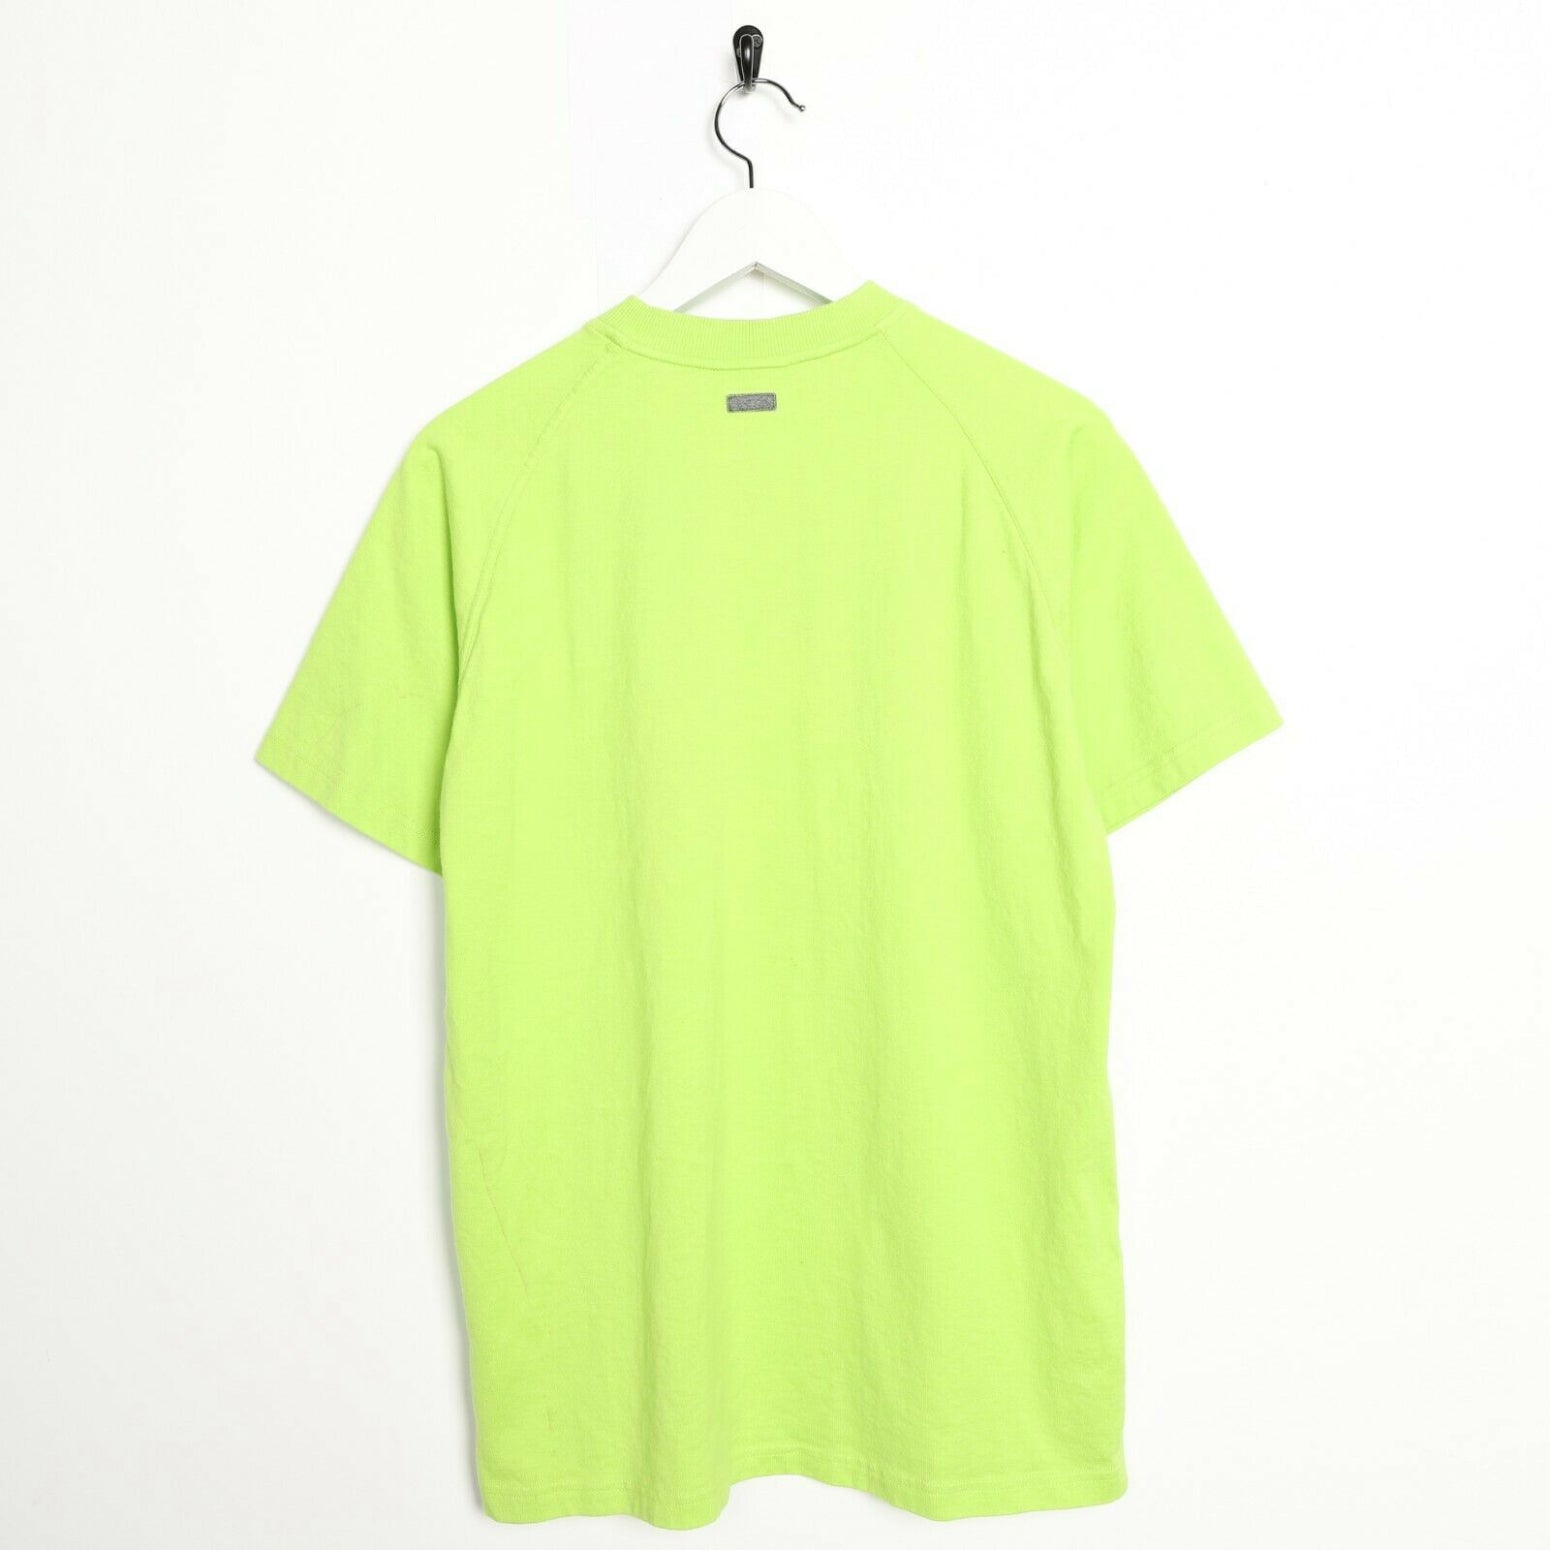 Vintage 90s ADIDAS Small Logo T Shirt Tee Green small S